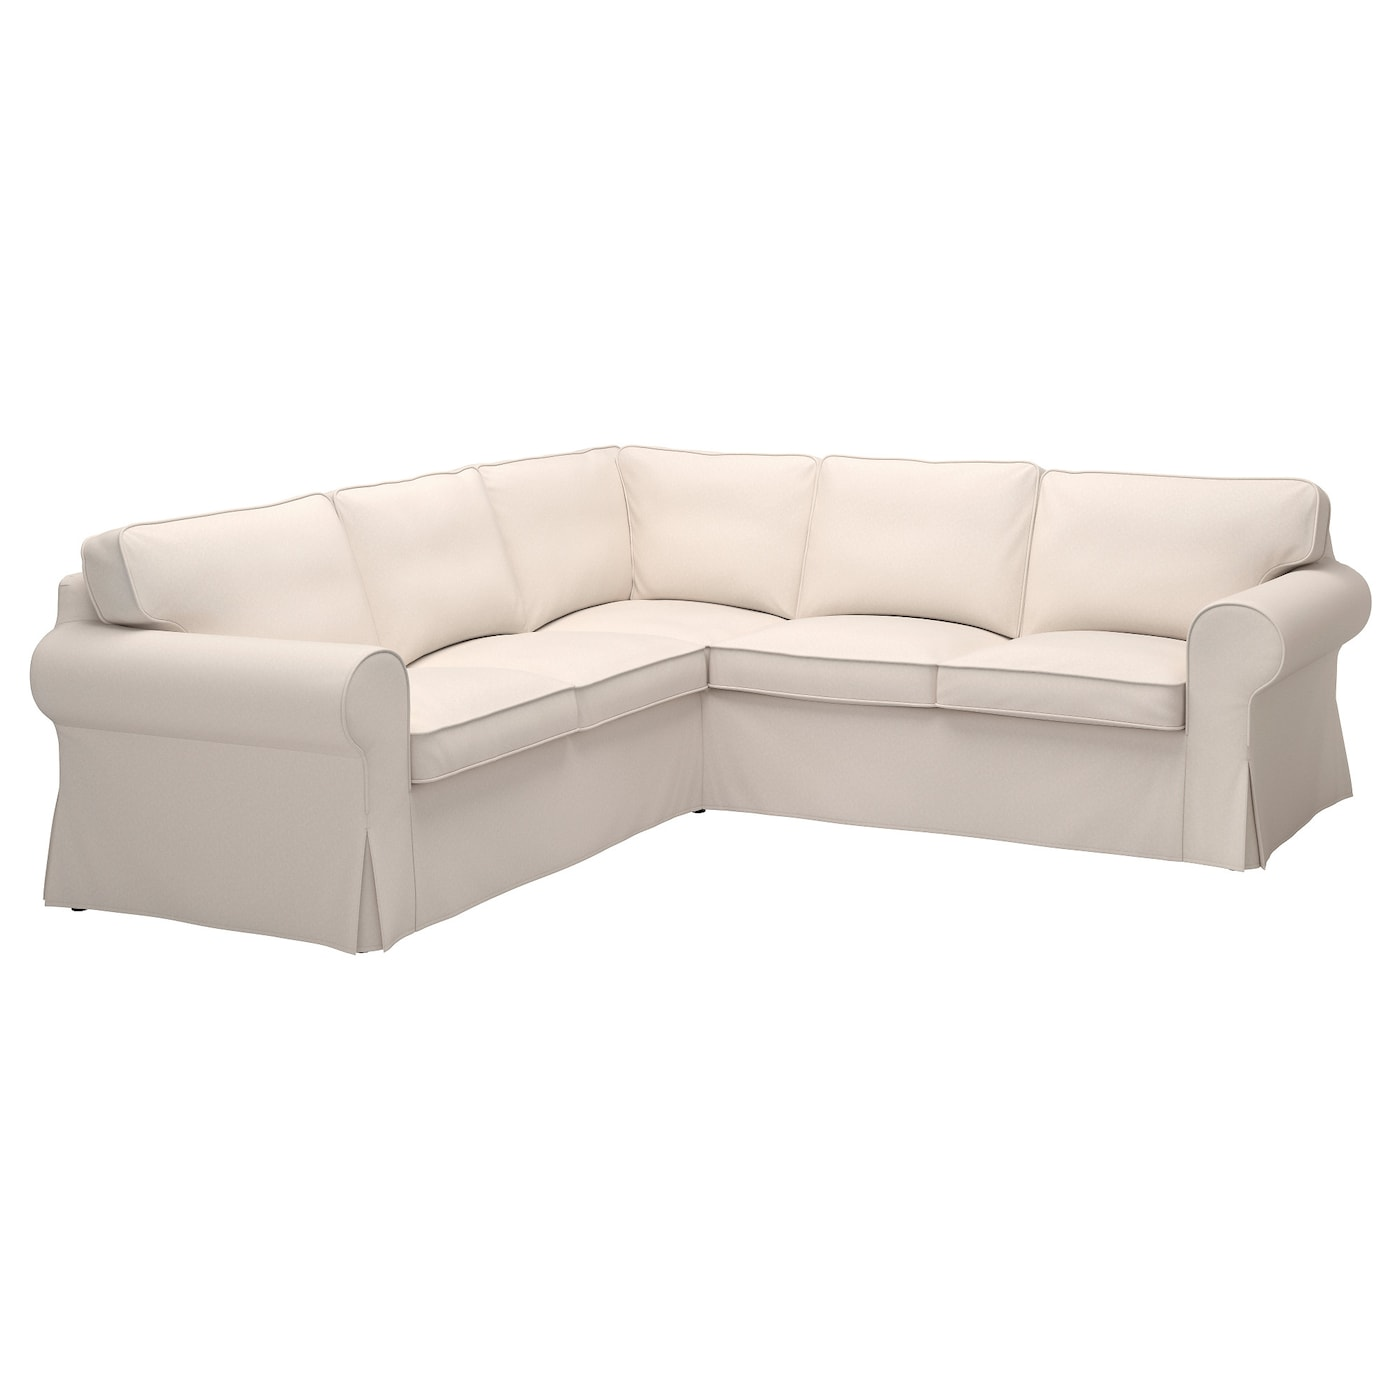 Schlafsofa ecksofa ikea  Free try out of Hybride Sofa from Ligne Roset in 3D, VR and AR